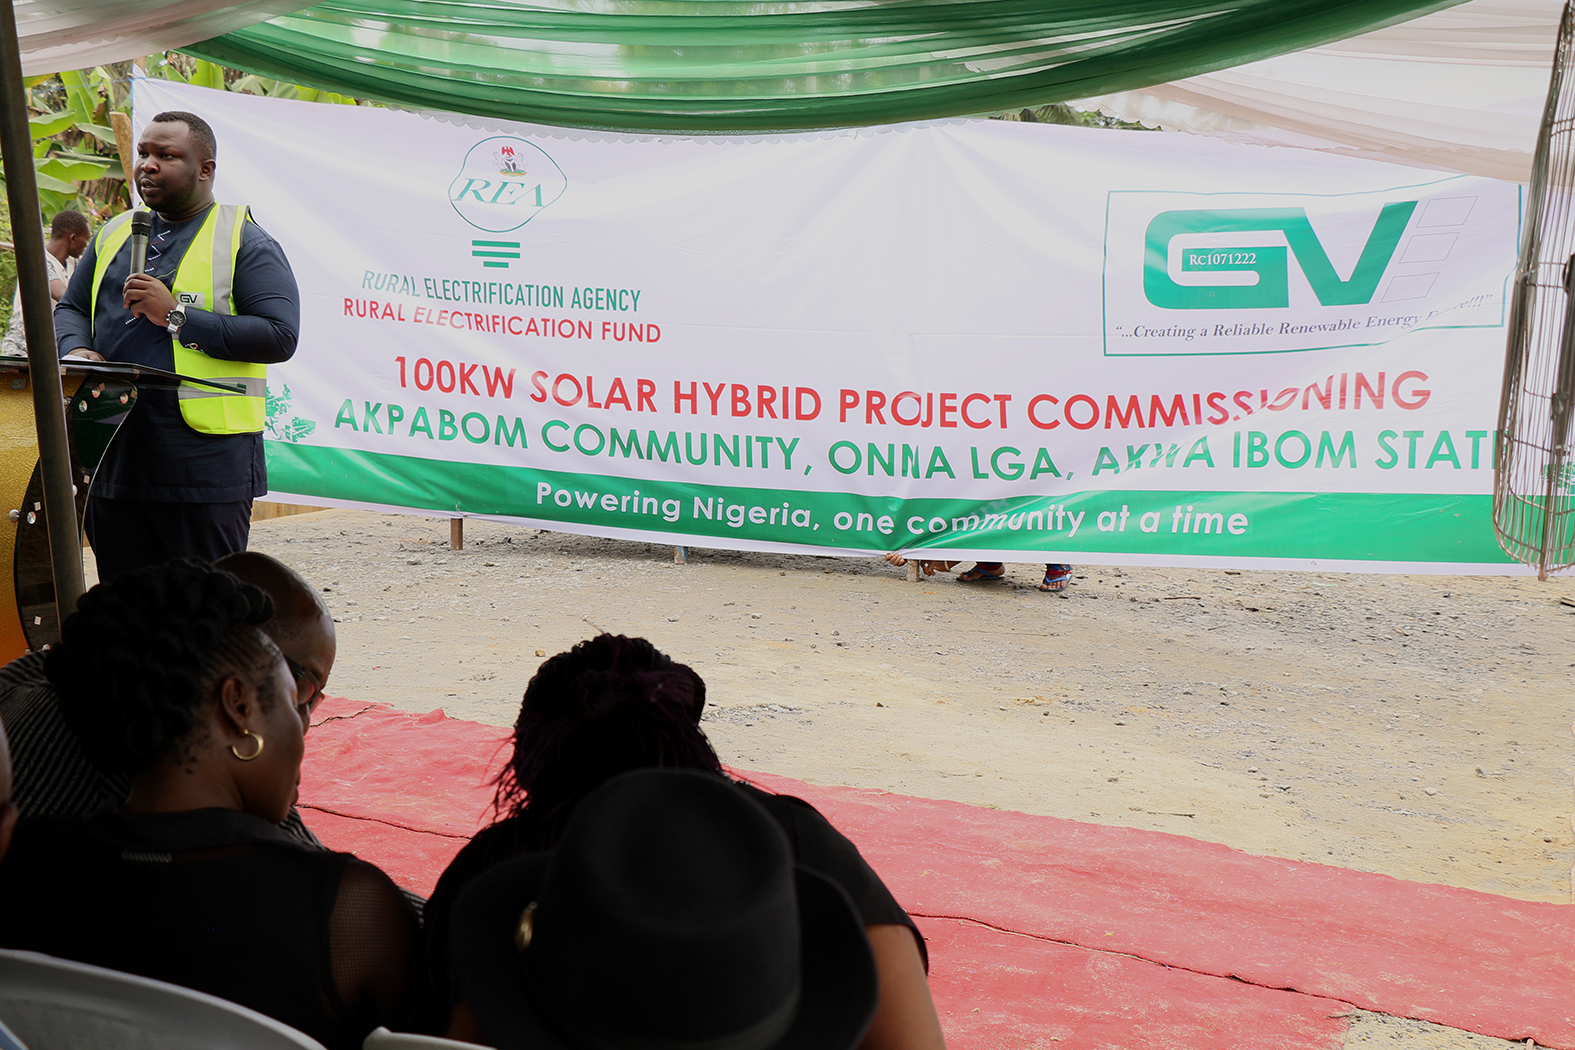 Rural Electrification Agency Commissioned a 100KW Solar Hybrid Mini Grid Power Plant in Akpabom Community